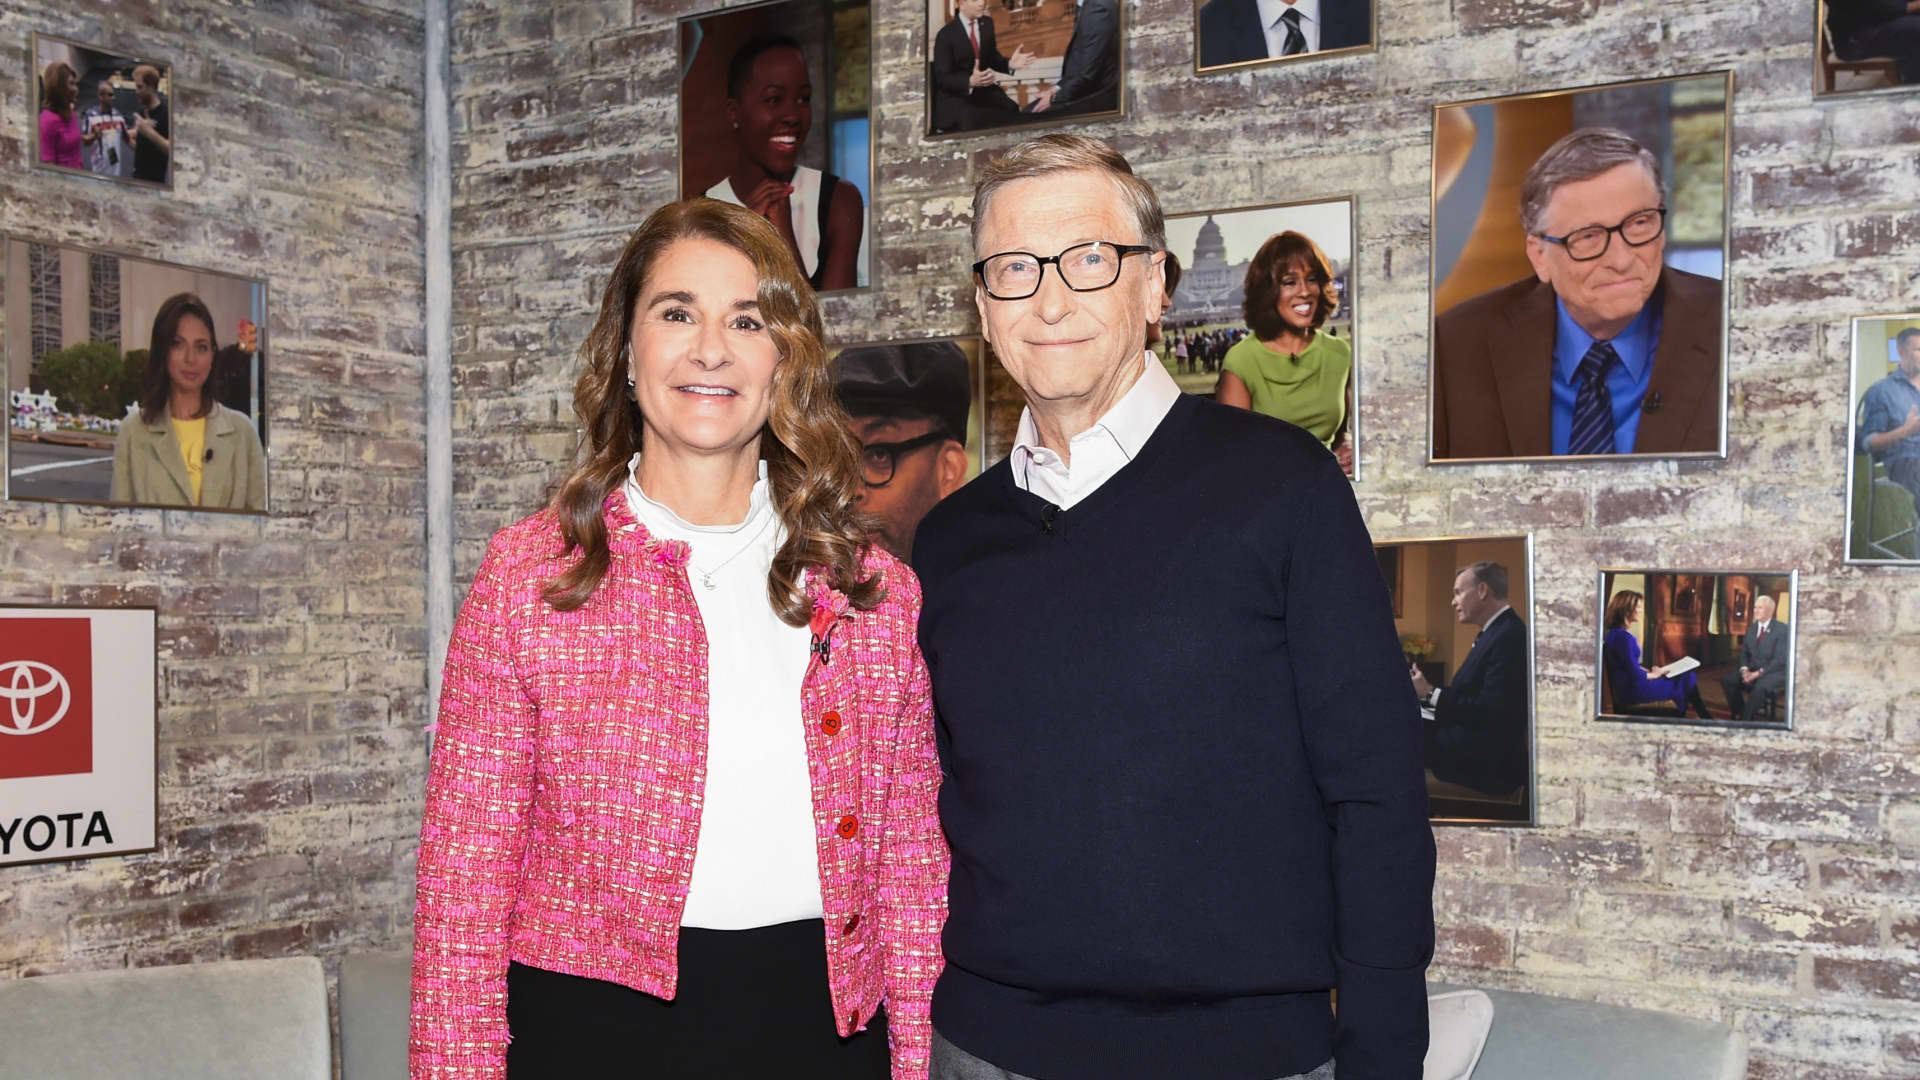 NEW YORK - FEBRUARY 12: Bill and Melinda Gates in the CBS Toyota Greenroom before their appearance on CBS THIS MORNING, Feb 12, 2019. (Photo by Michele Crowe/CBS via Getty Images)